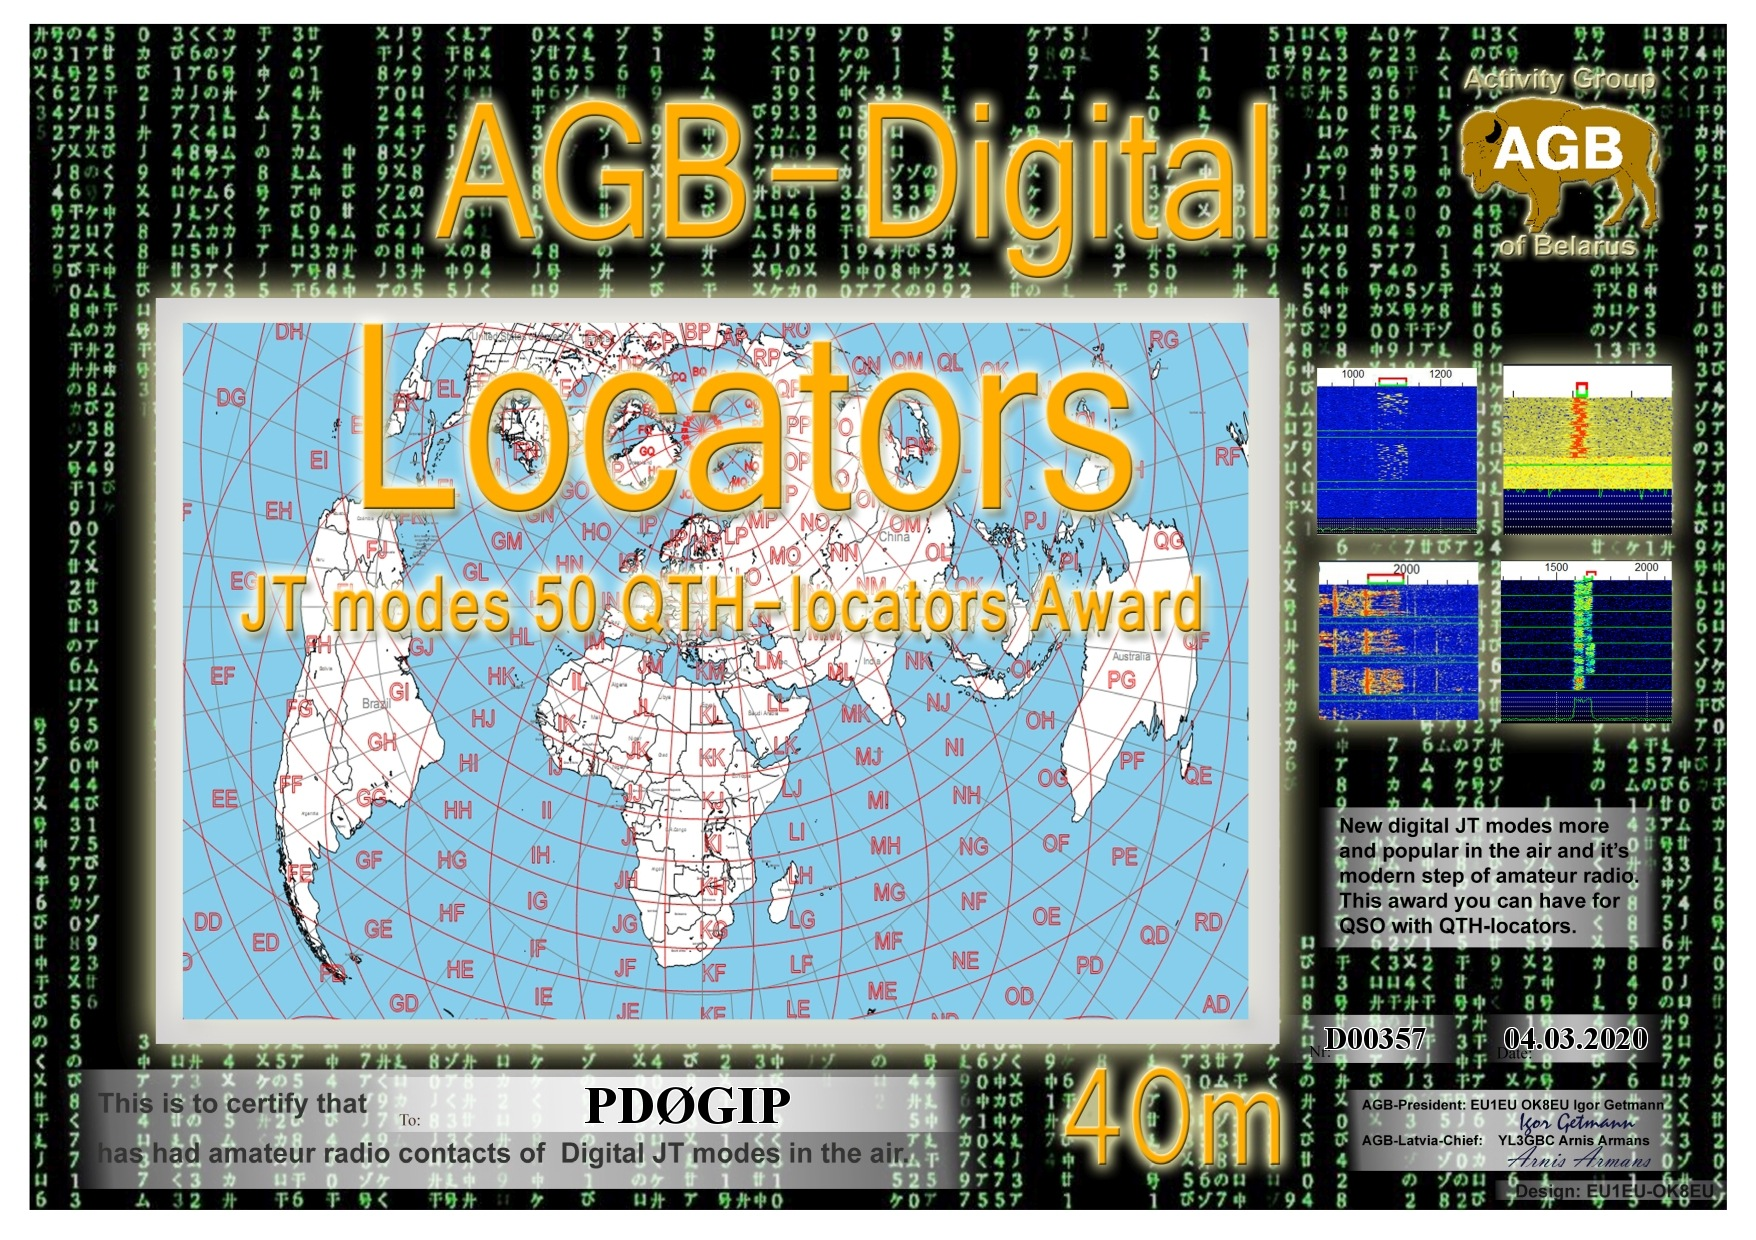 PD0GIP LOCATORS 40M 50 AGB